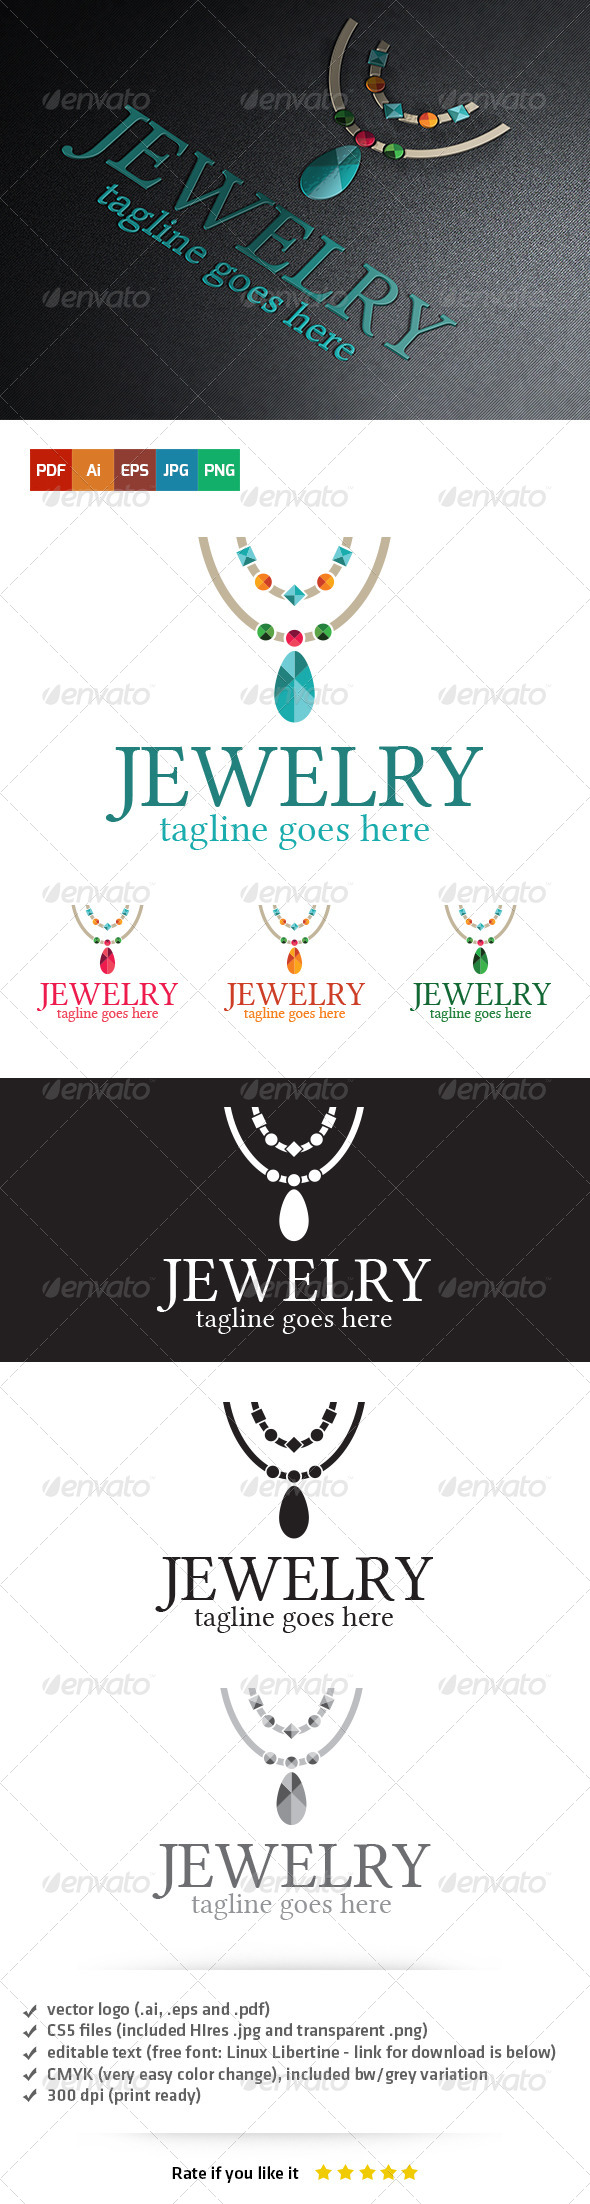 GraphicRiver Jewelry Logo 5403783